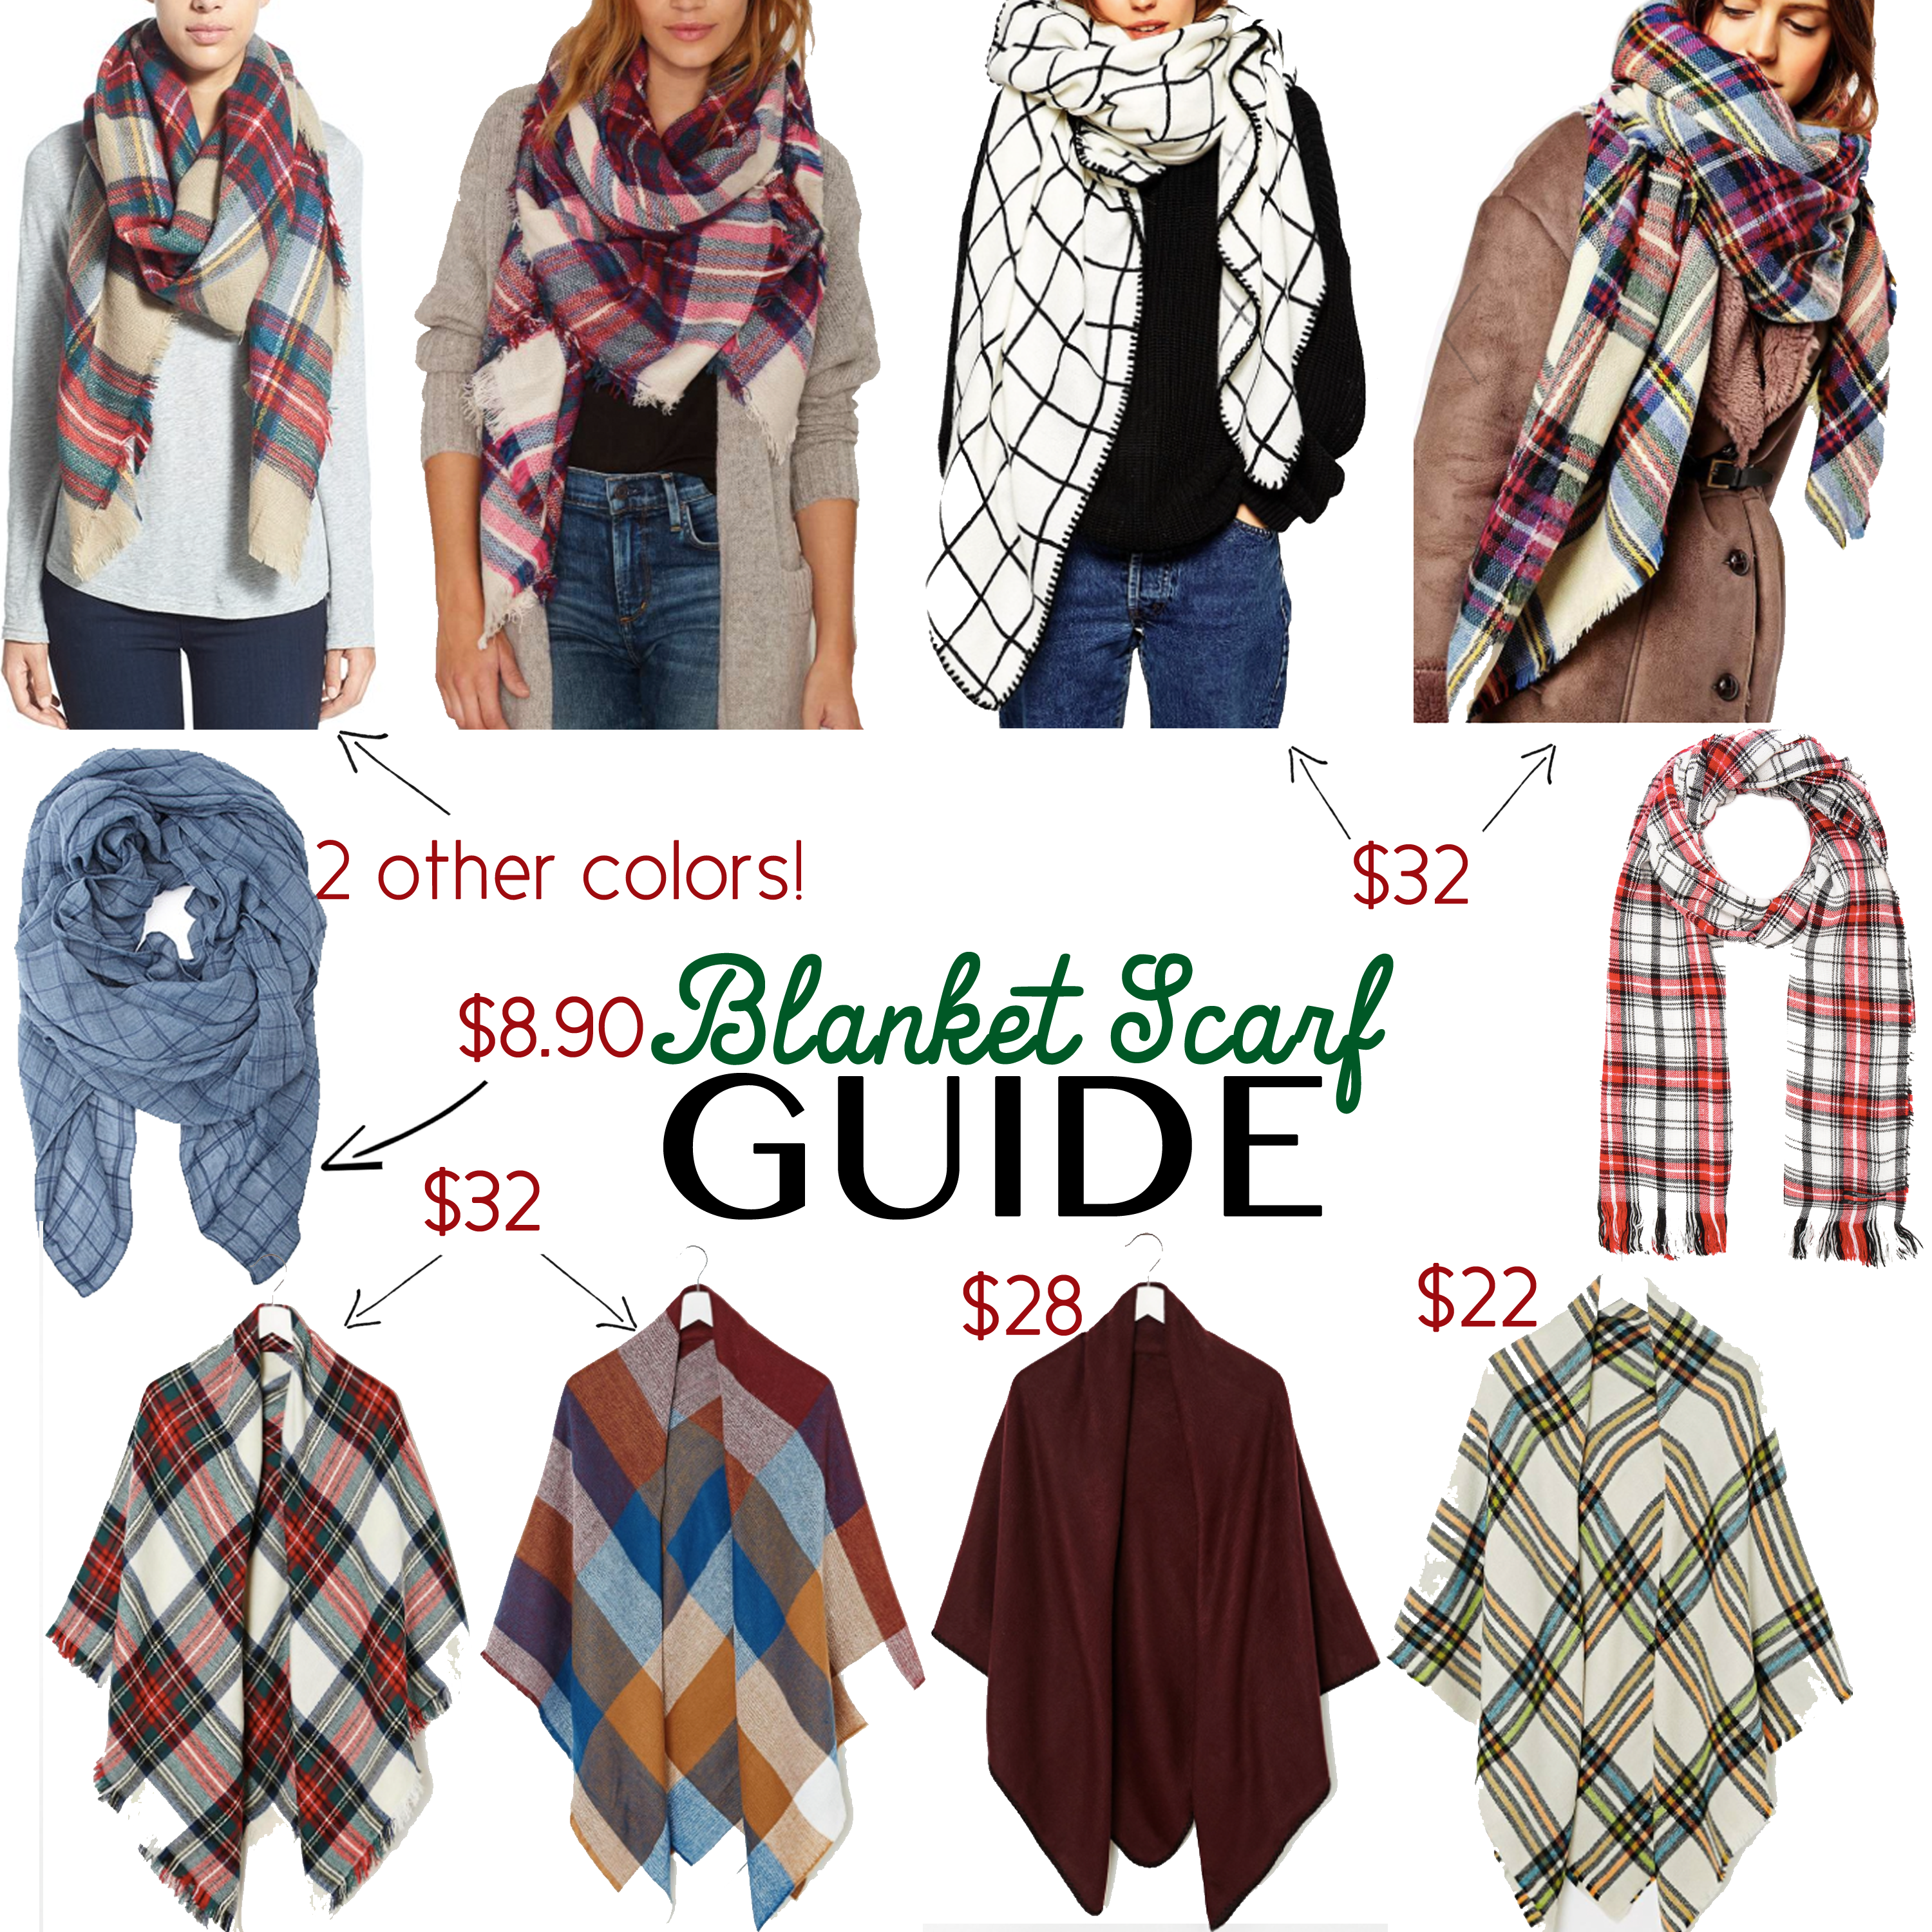 Blanket Scarf Guide